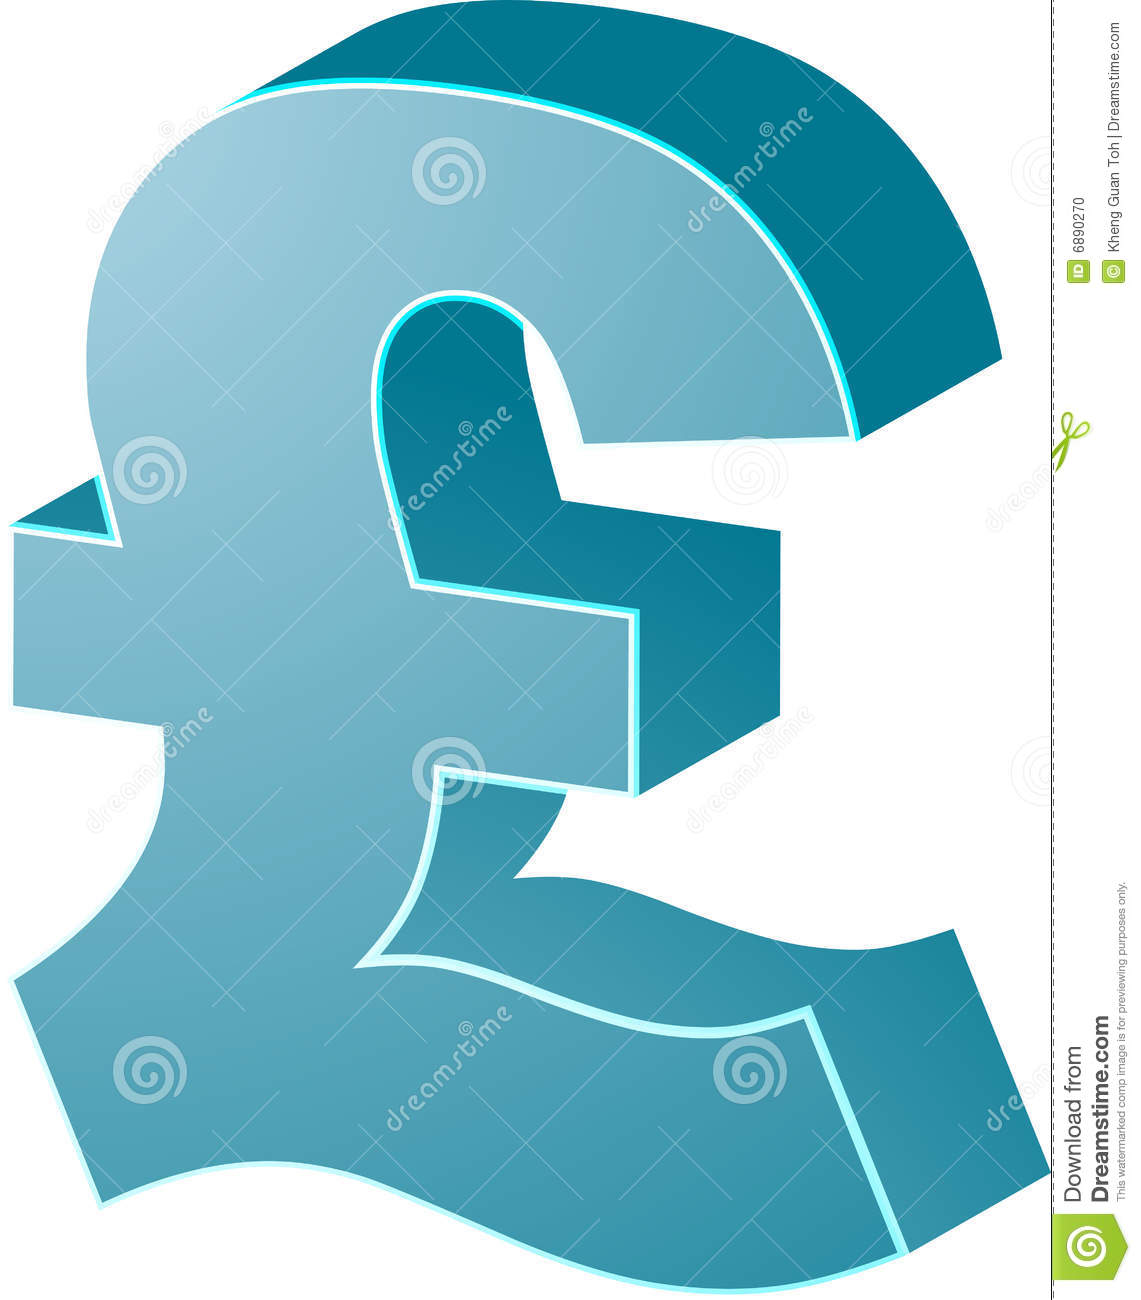 British Pounds Stock Vector Illustration Of Financial 6890270